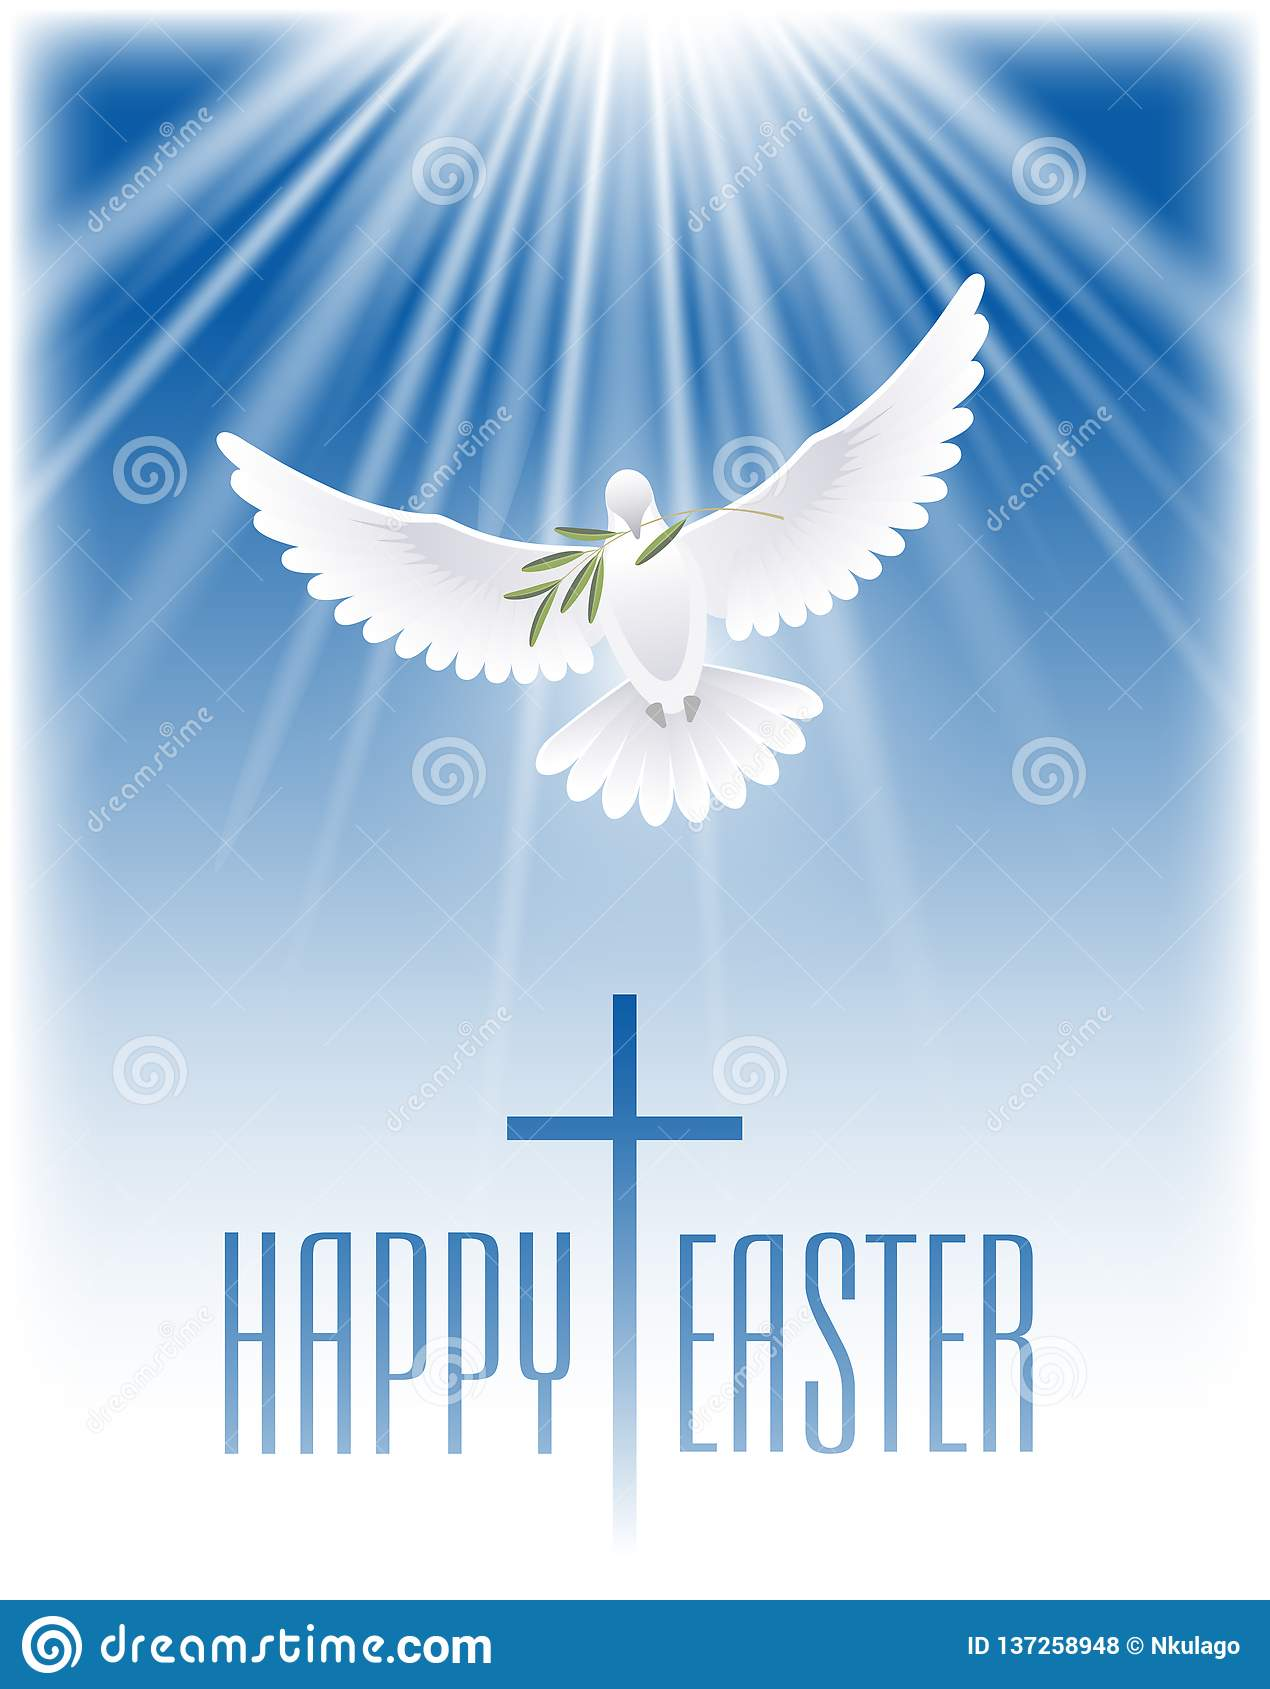 Happy Easter. White dove with olive branch and cross